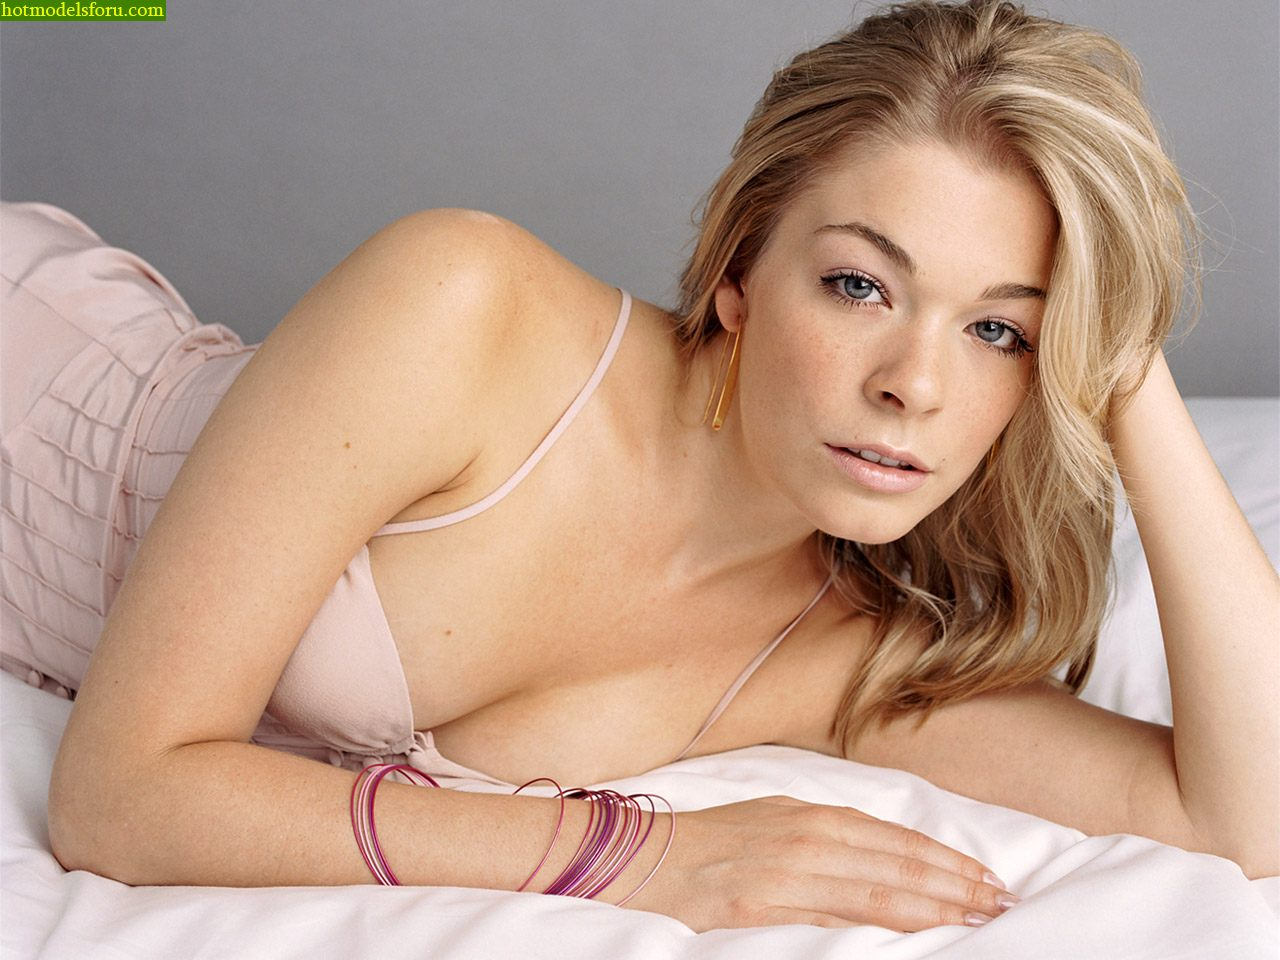 ... : Hot Leann Rimes photos sexy wallpapers cool pics hot legs sexy lips: cineshub.blogspot.com/2011/04/hot-leann-rimes-photos-sexy...